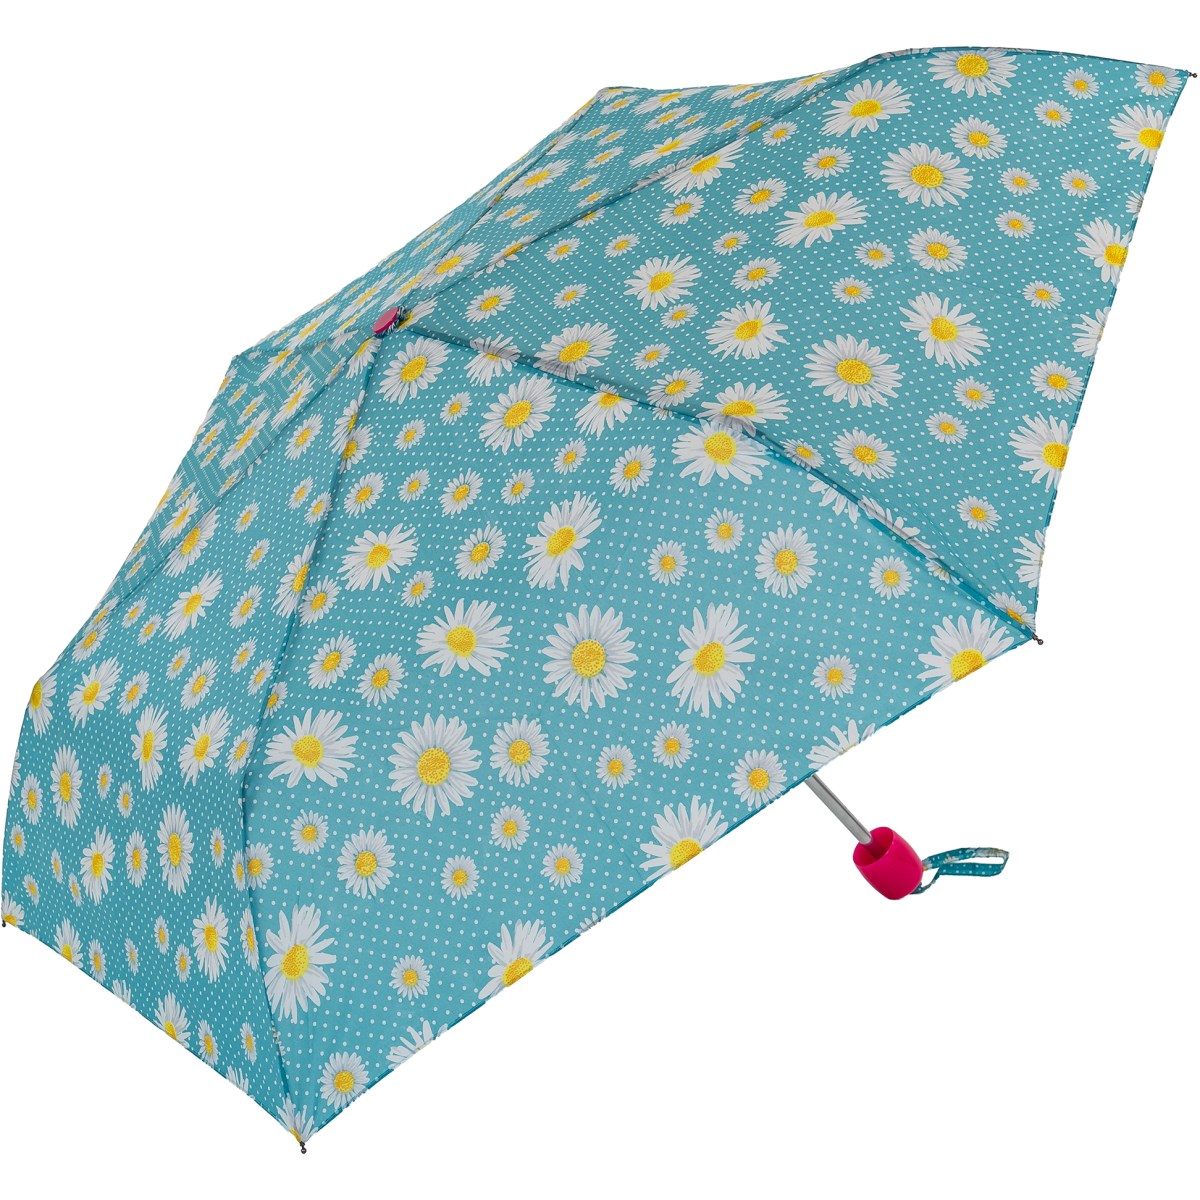 Blue Daisy Print Compact Umbrella  (31105)